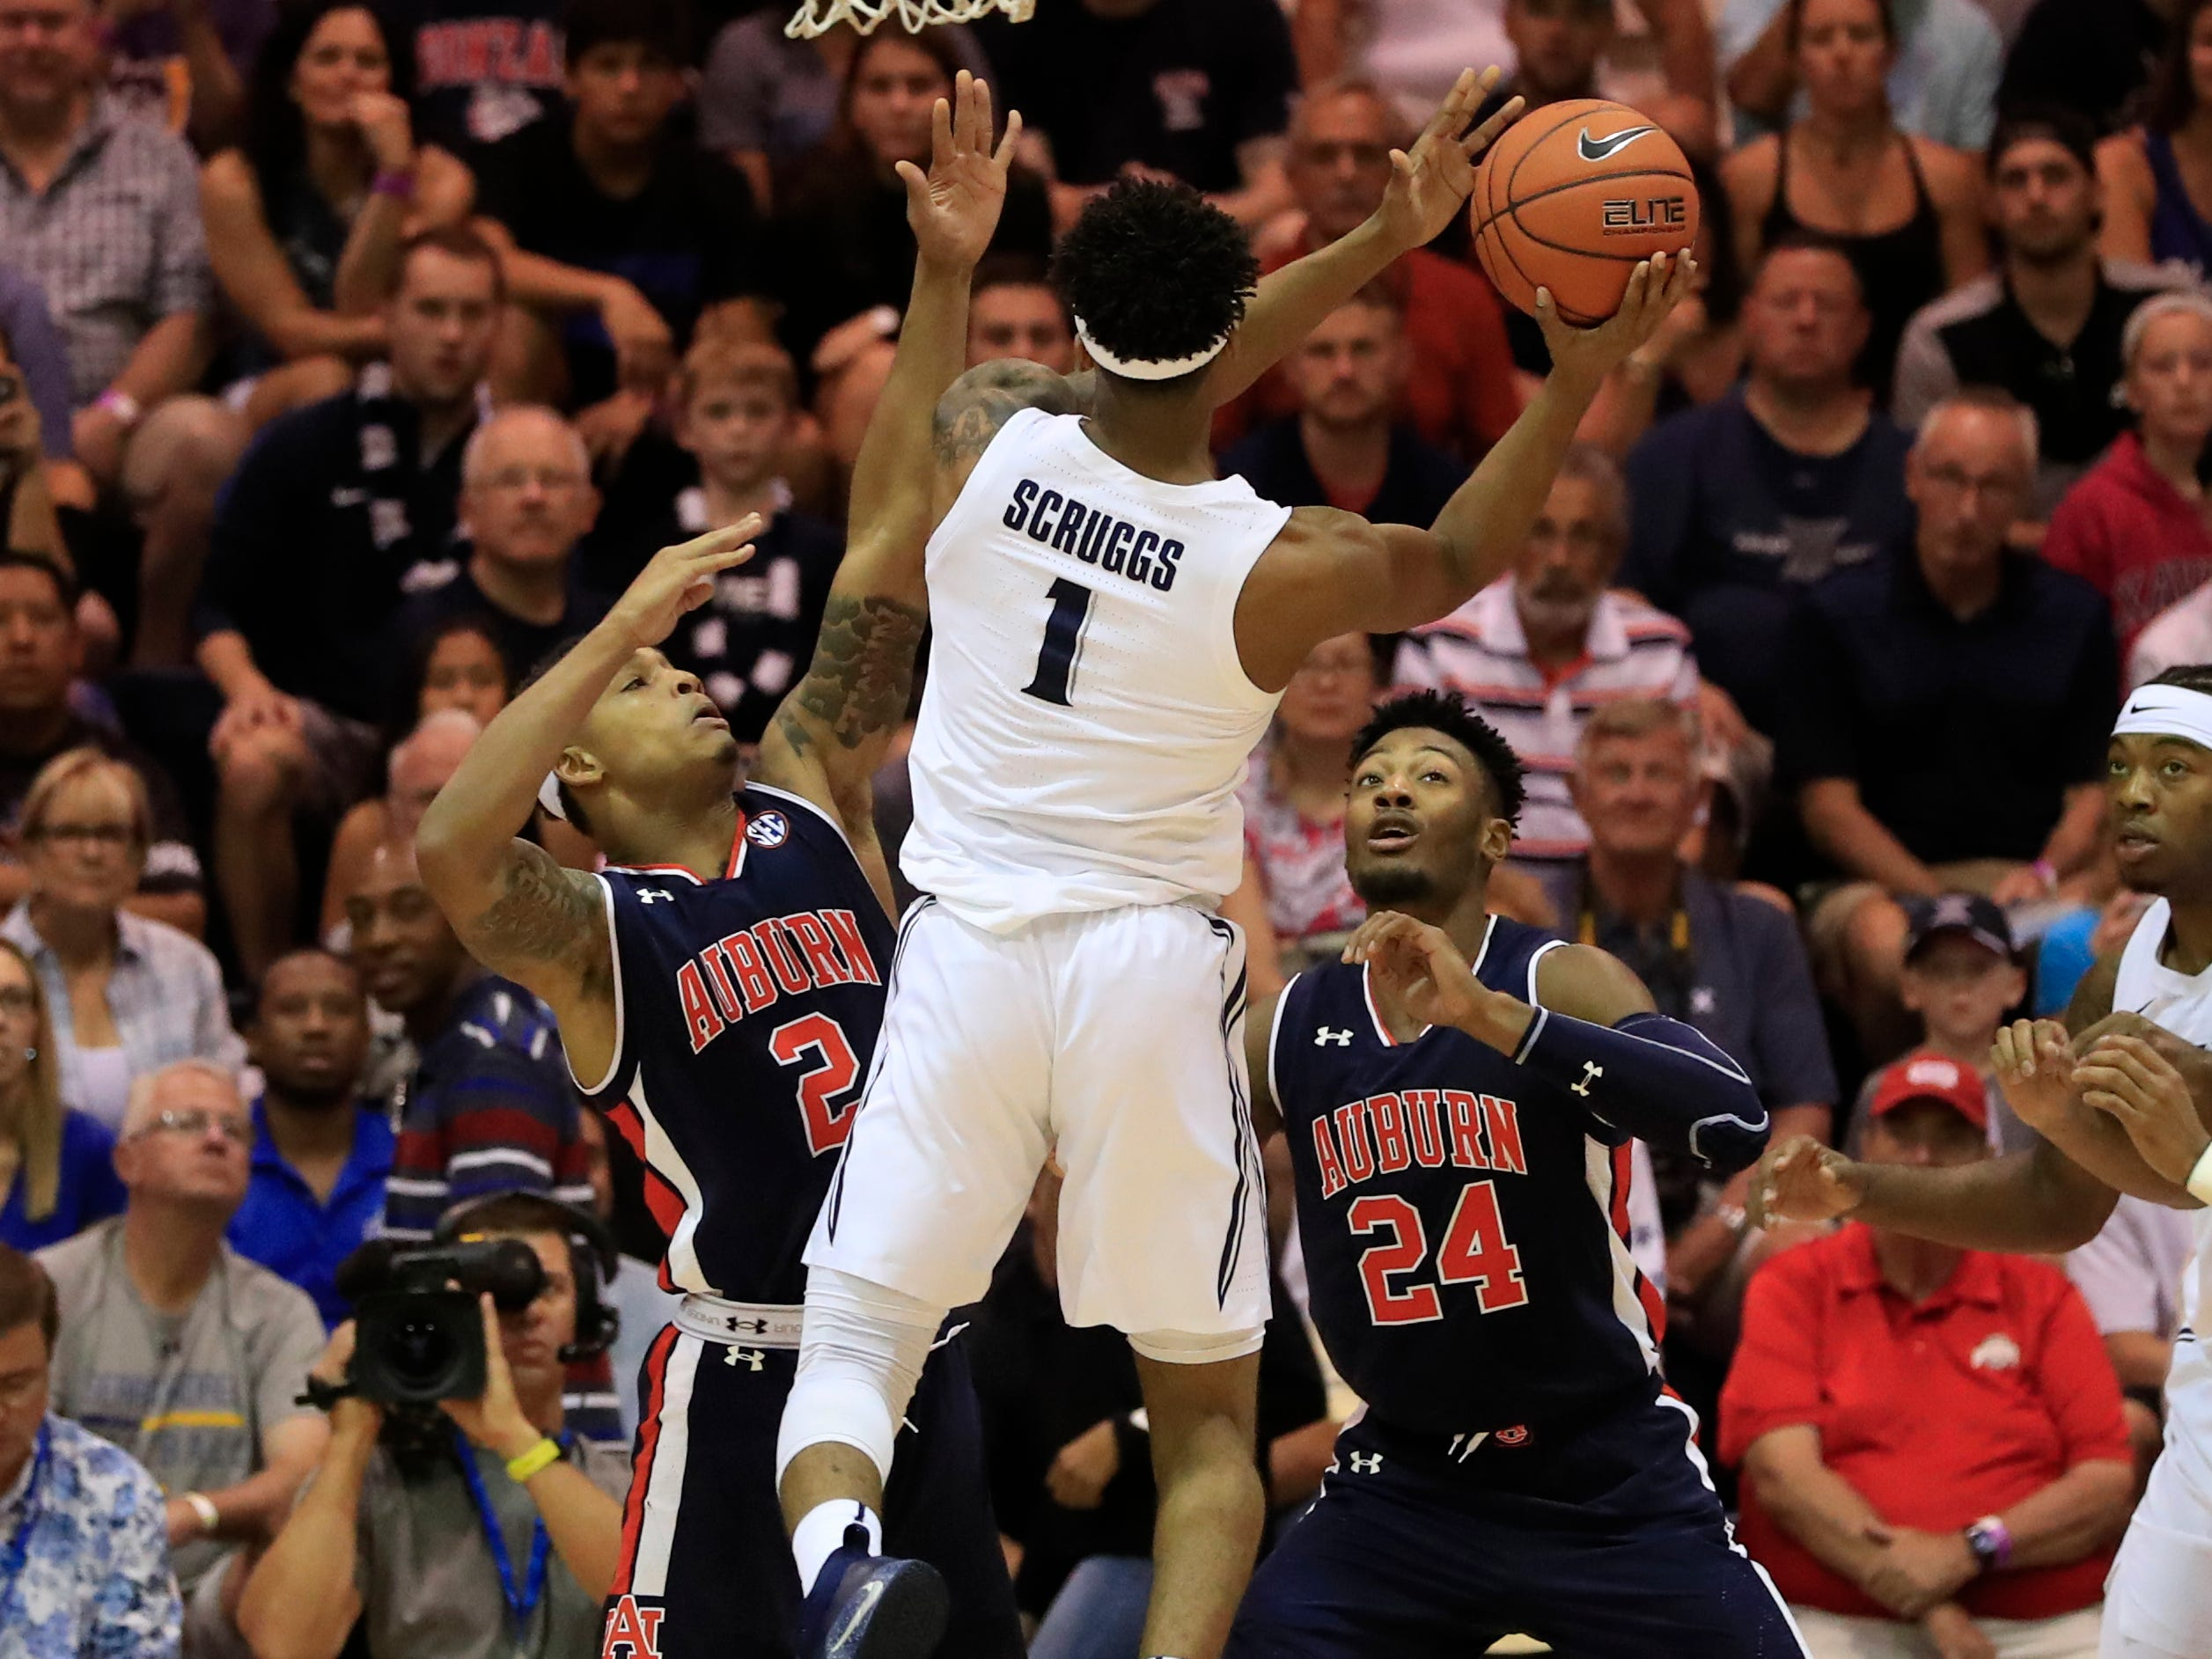 Auburn guard Bryce Brown (2) and forward Anfernee McLemore (24) try to guard Xavier guard Paul Scruggs (1) during the first half of an NCAA college basketball game at the Maui Invitational, Monday, Nov. 19, 2018, in Lahaina, Hawaii.